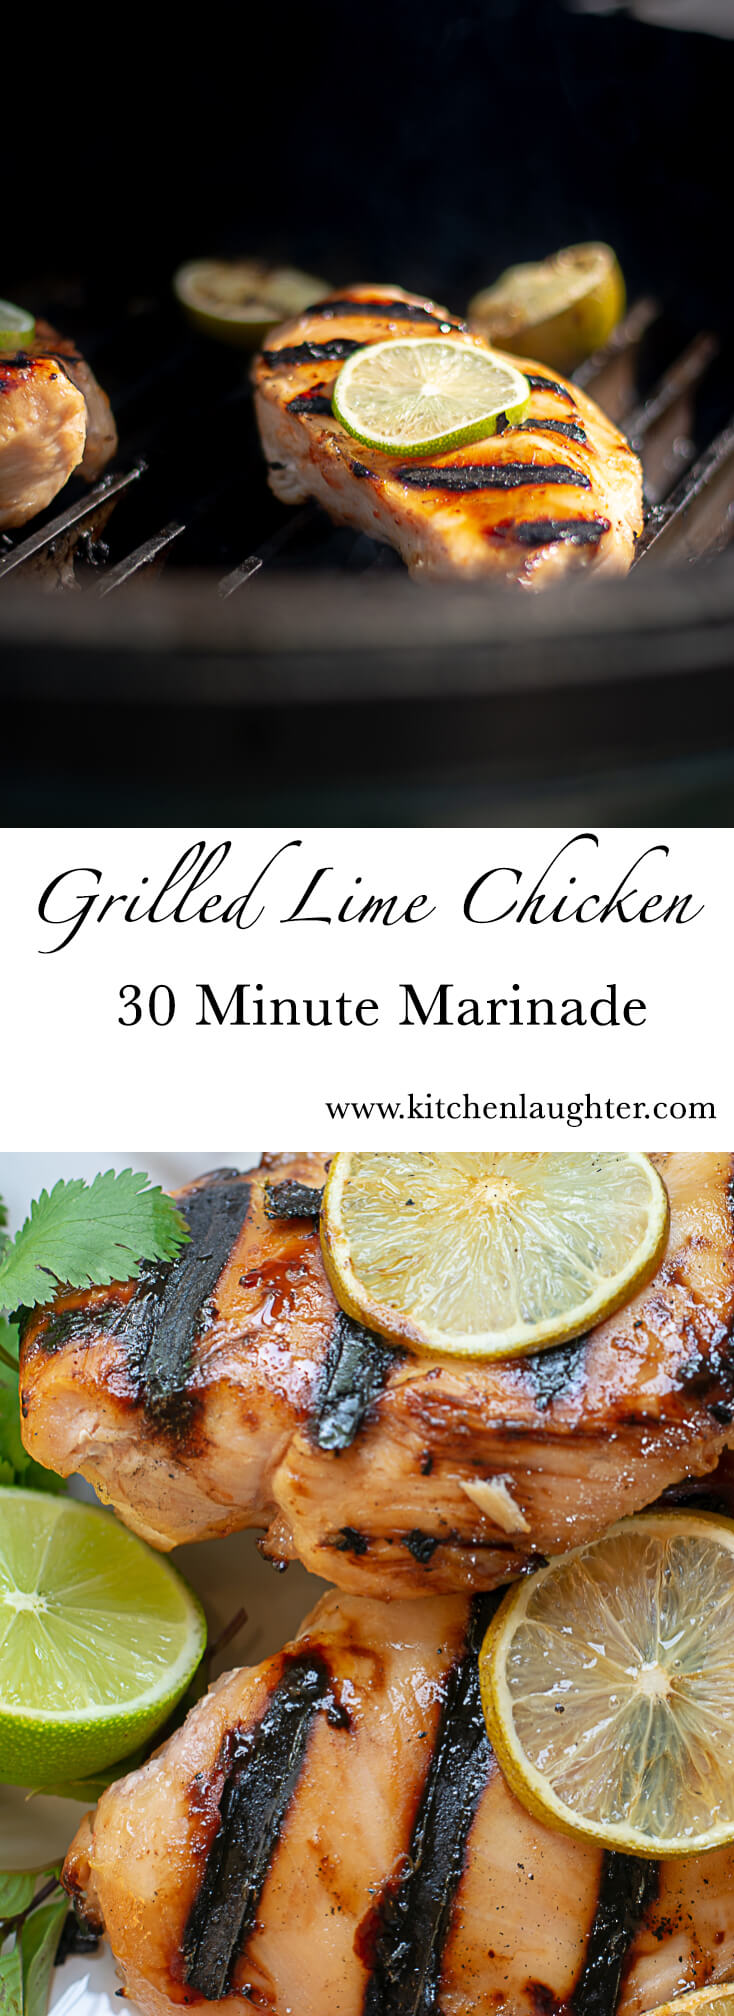 Grilled Lime Chicken with 30 Minute Marinade #LimeChicken #Grilled #BGE #BigGreenEgg #30minutemarinade #EasyGrill #grillporn #GrillGrate